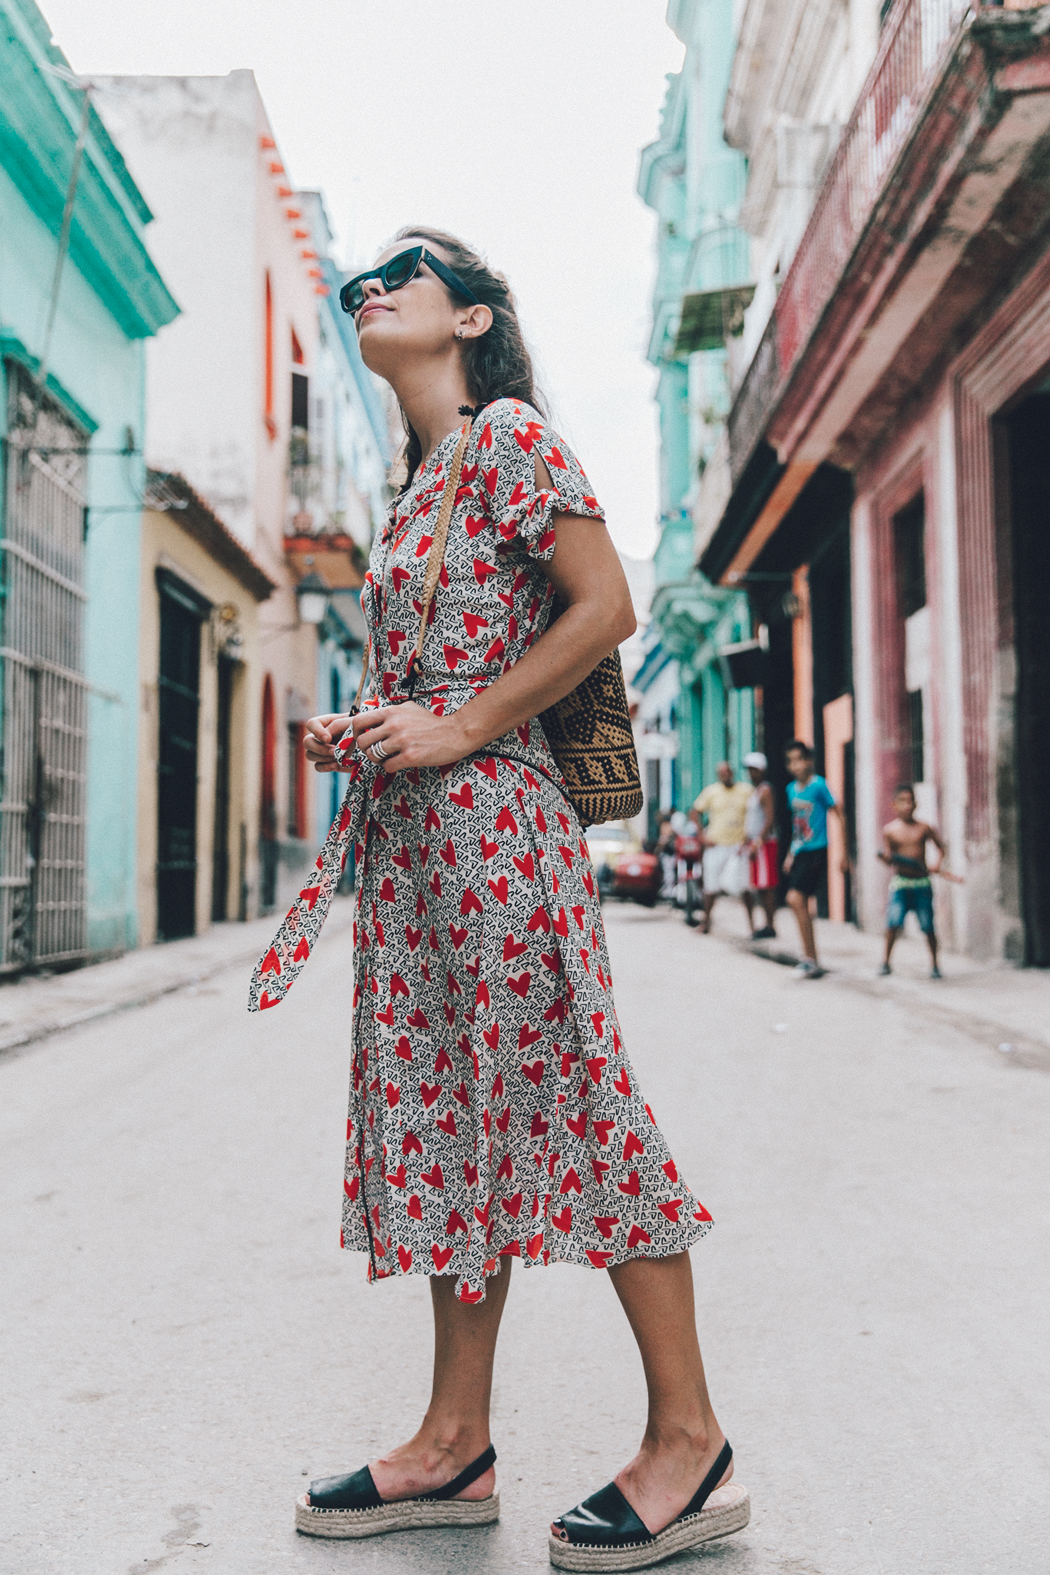 Cuba-La_Habana_Vieja-Hearts_Dress-Styled_By_Me-Aloha_Espadrilles-Outfit-Street_Style-Dress-Backpack-24